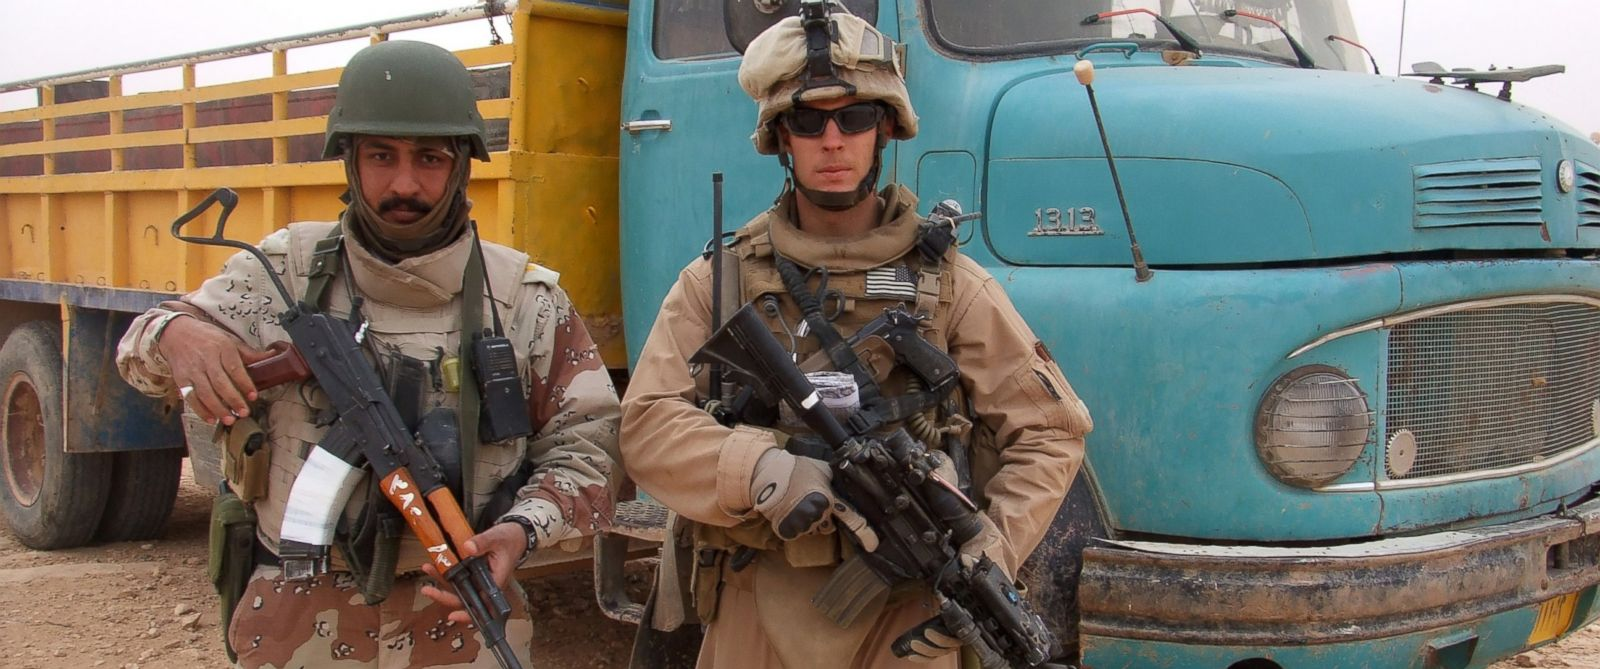 PHOTO: This 2007 photo provided by Chase Millsap shows Millsap with the Captain standing next to a suspected truck bomb following a successful raid in Al Anbar, Iraq.